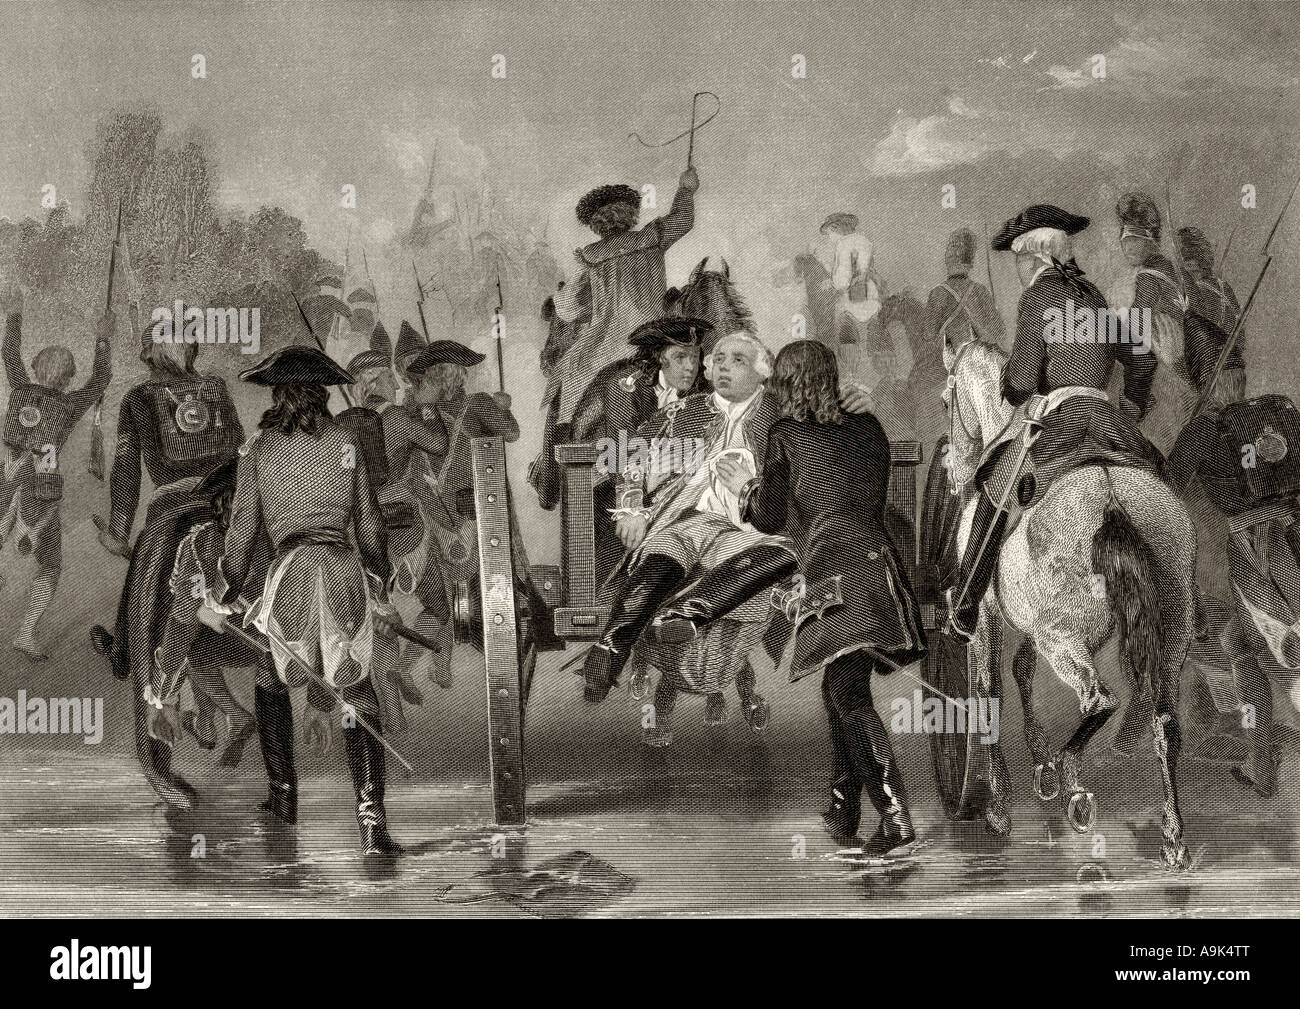 Mortally wounded, General Edward Braddock, 1695 - 1755, retreats from the Monongahela River in 1755. - Stock Image